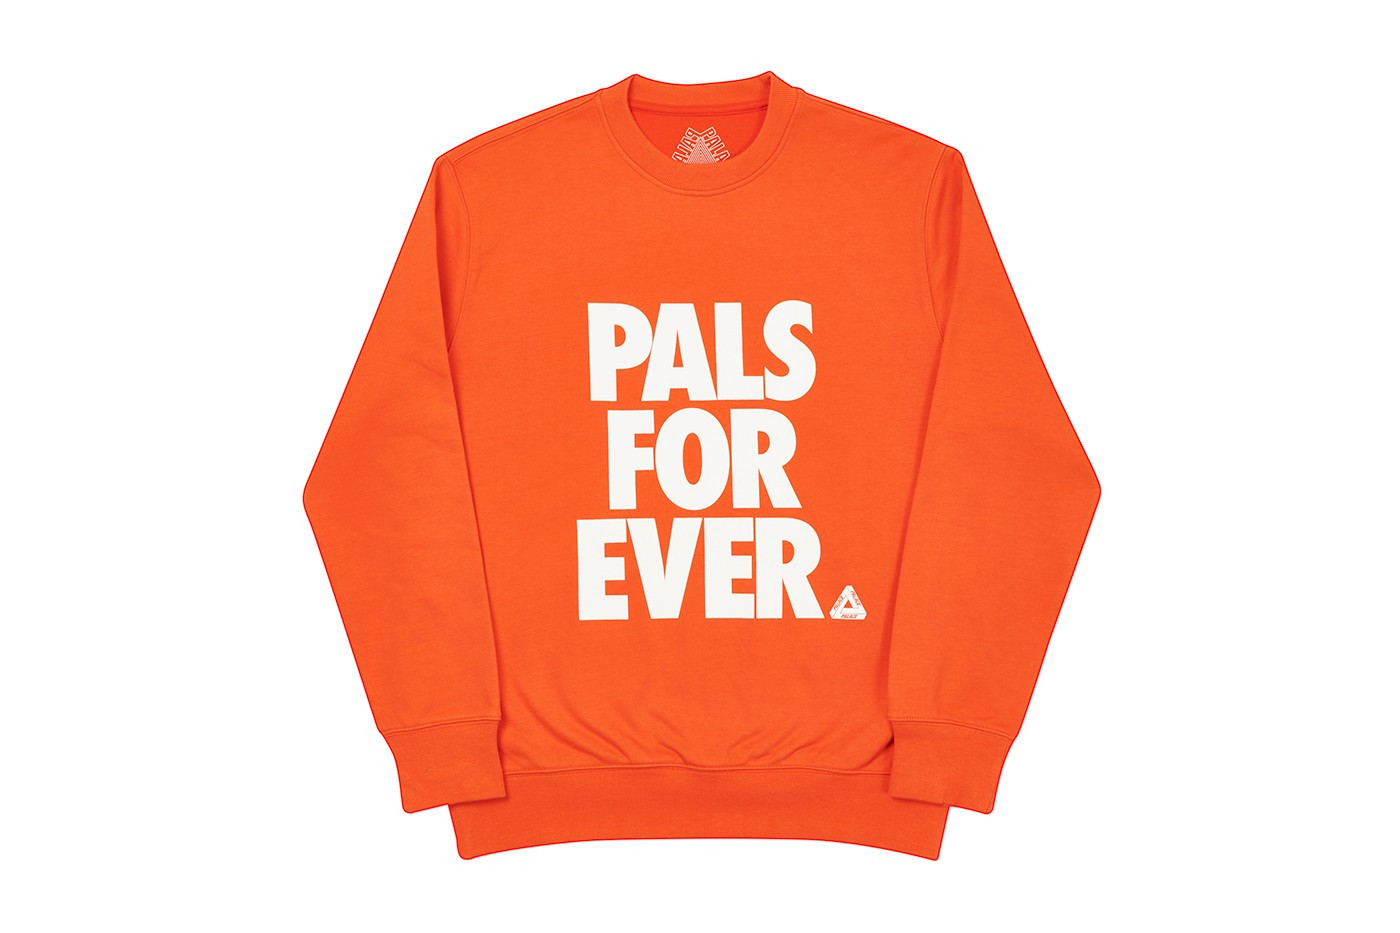 Palace Pals Crew Nike Font Orange PALLS FOR EVER